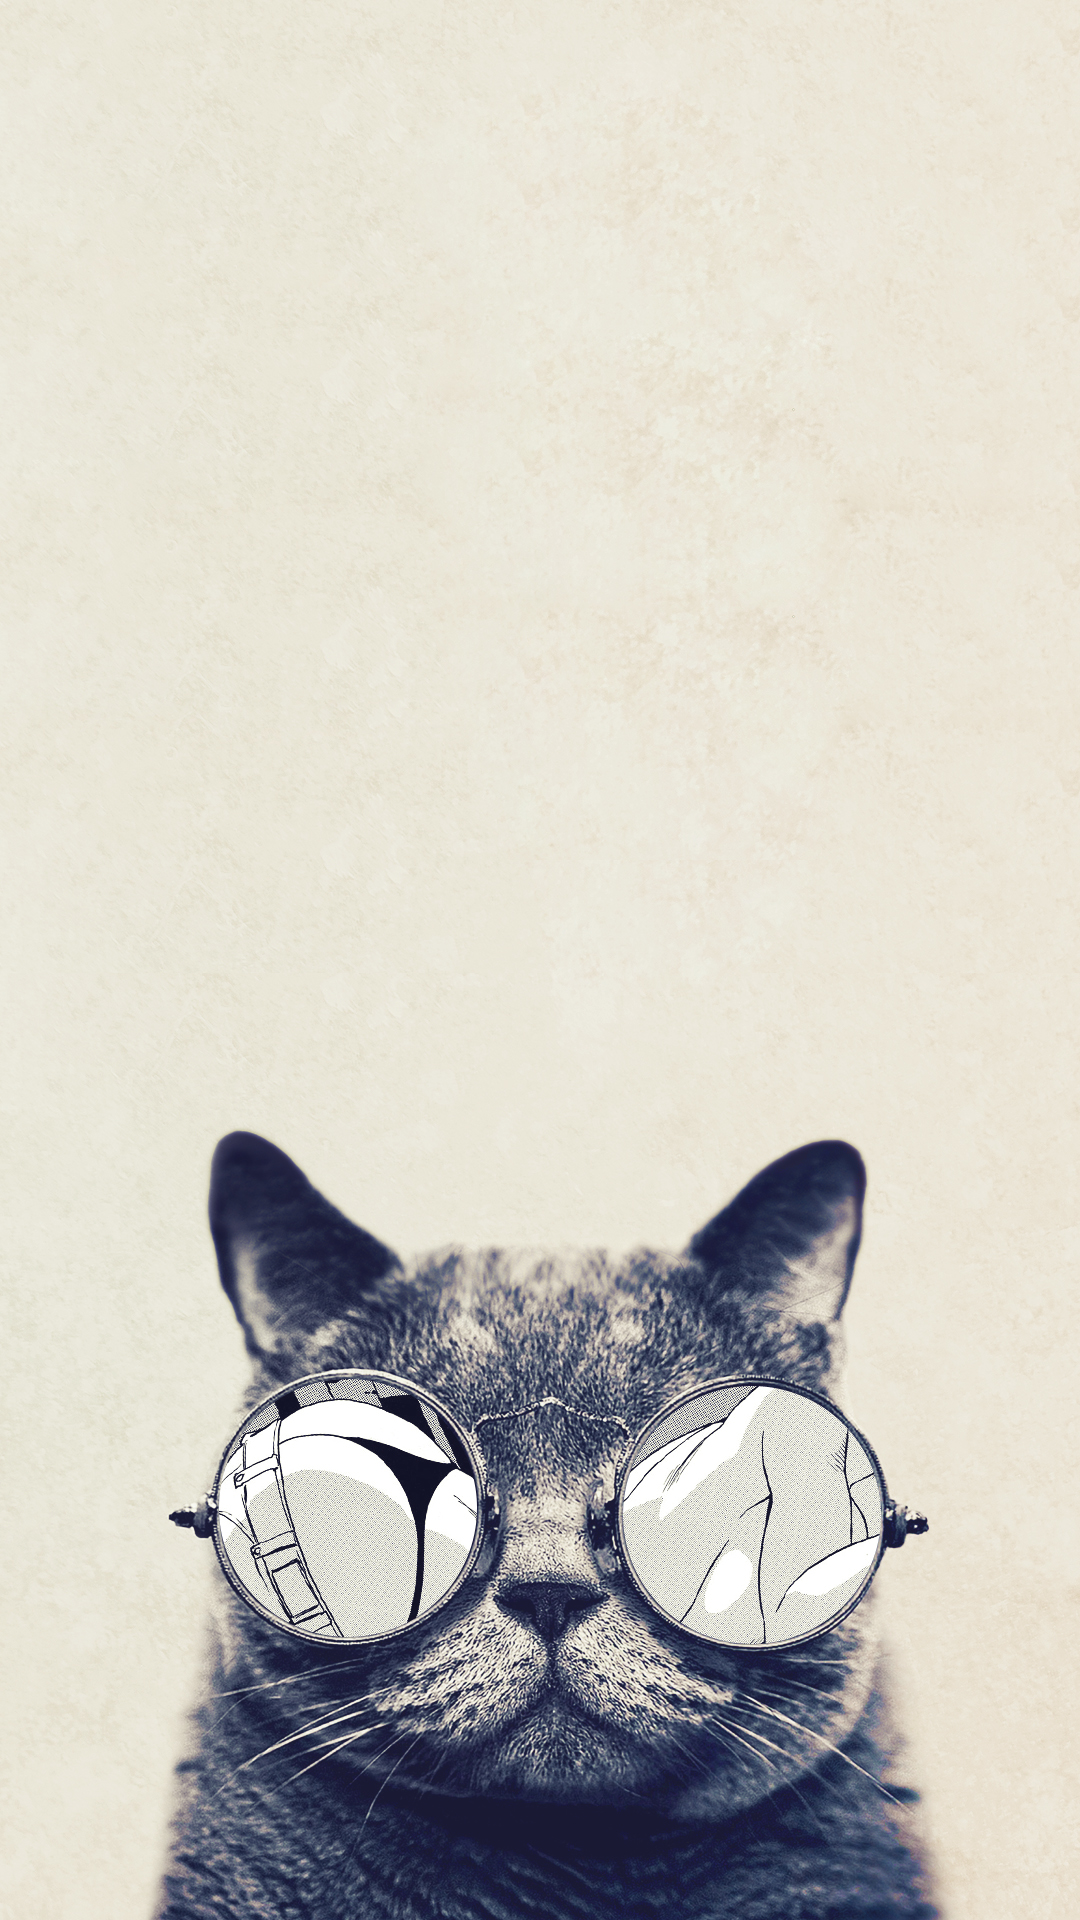 Cool Cat Glasses iPhone 6 Plus HD Wallpaper HD Wallpapers and iPhone 1080x1920